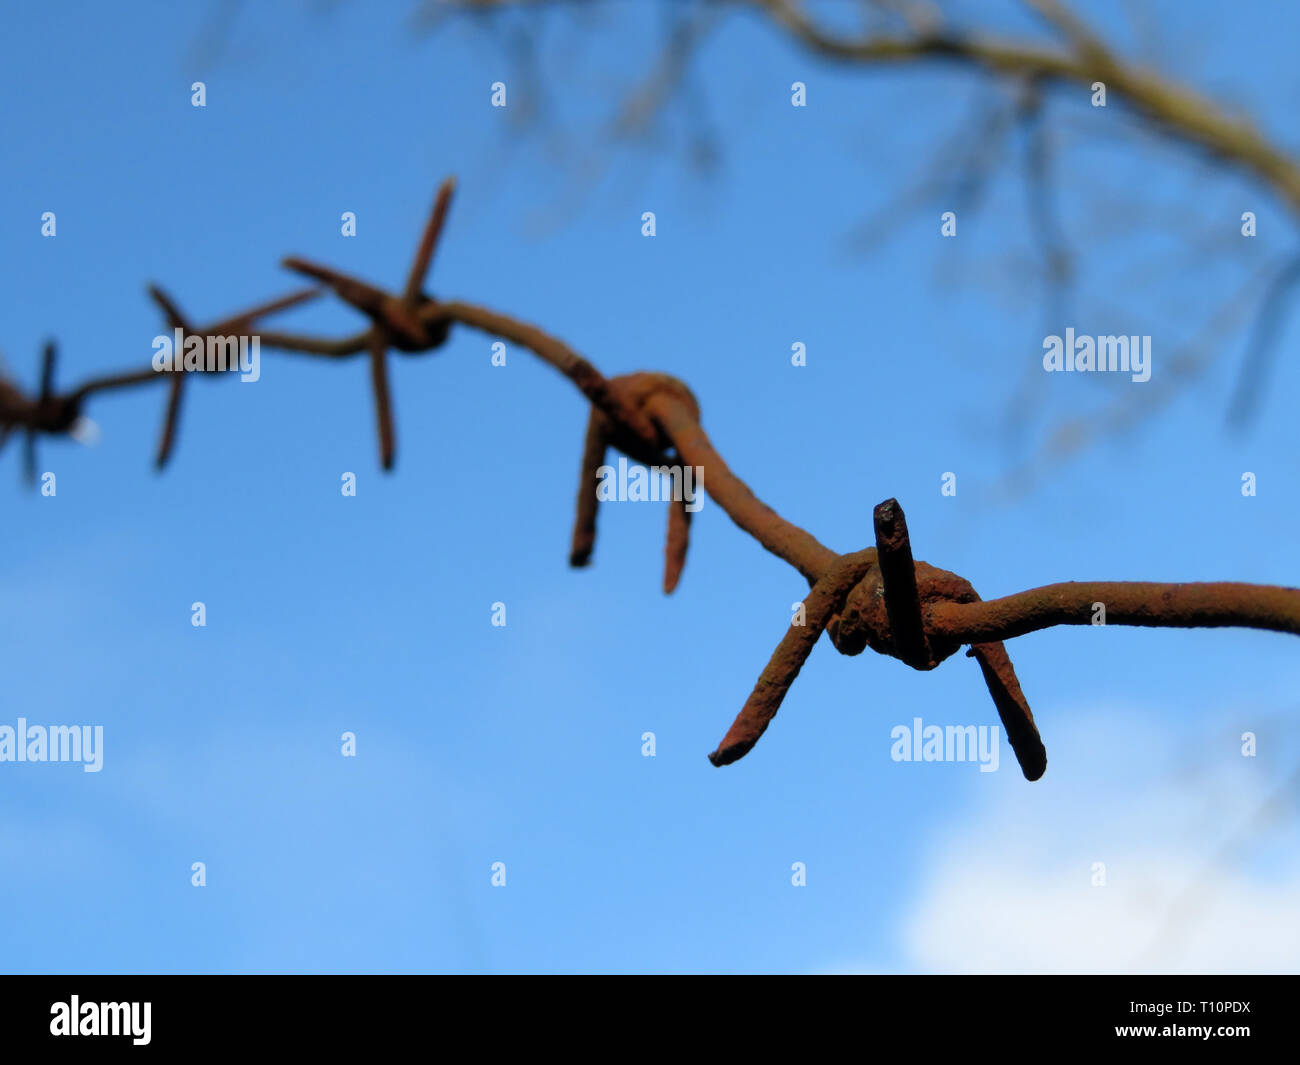 Rusty barbed wire on background of blue sky with clouds and bare branches. Concept of boundary, prison, freedom, immigration in spring, military camp - Stock Image